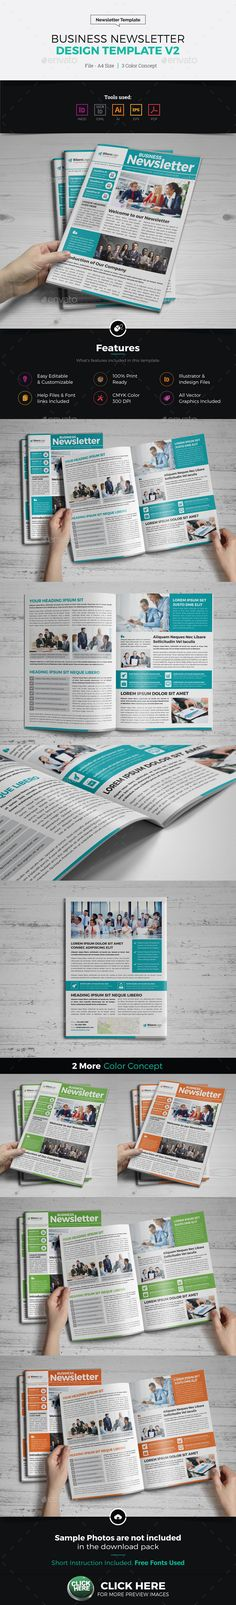 #Newsletter Design Template v2 - Newsletters Print #Templates Download here: https://graphicriver.net/item/newsletter-design-template-v2/6674095?ref=alena994